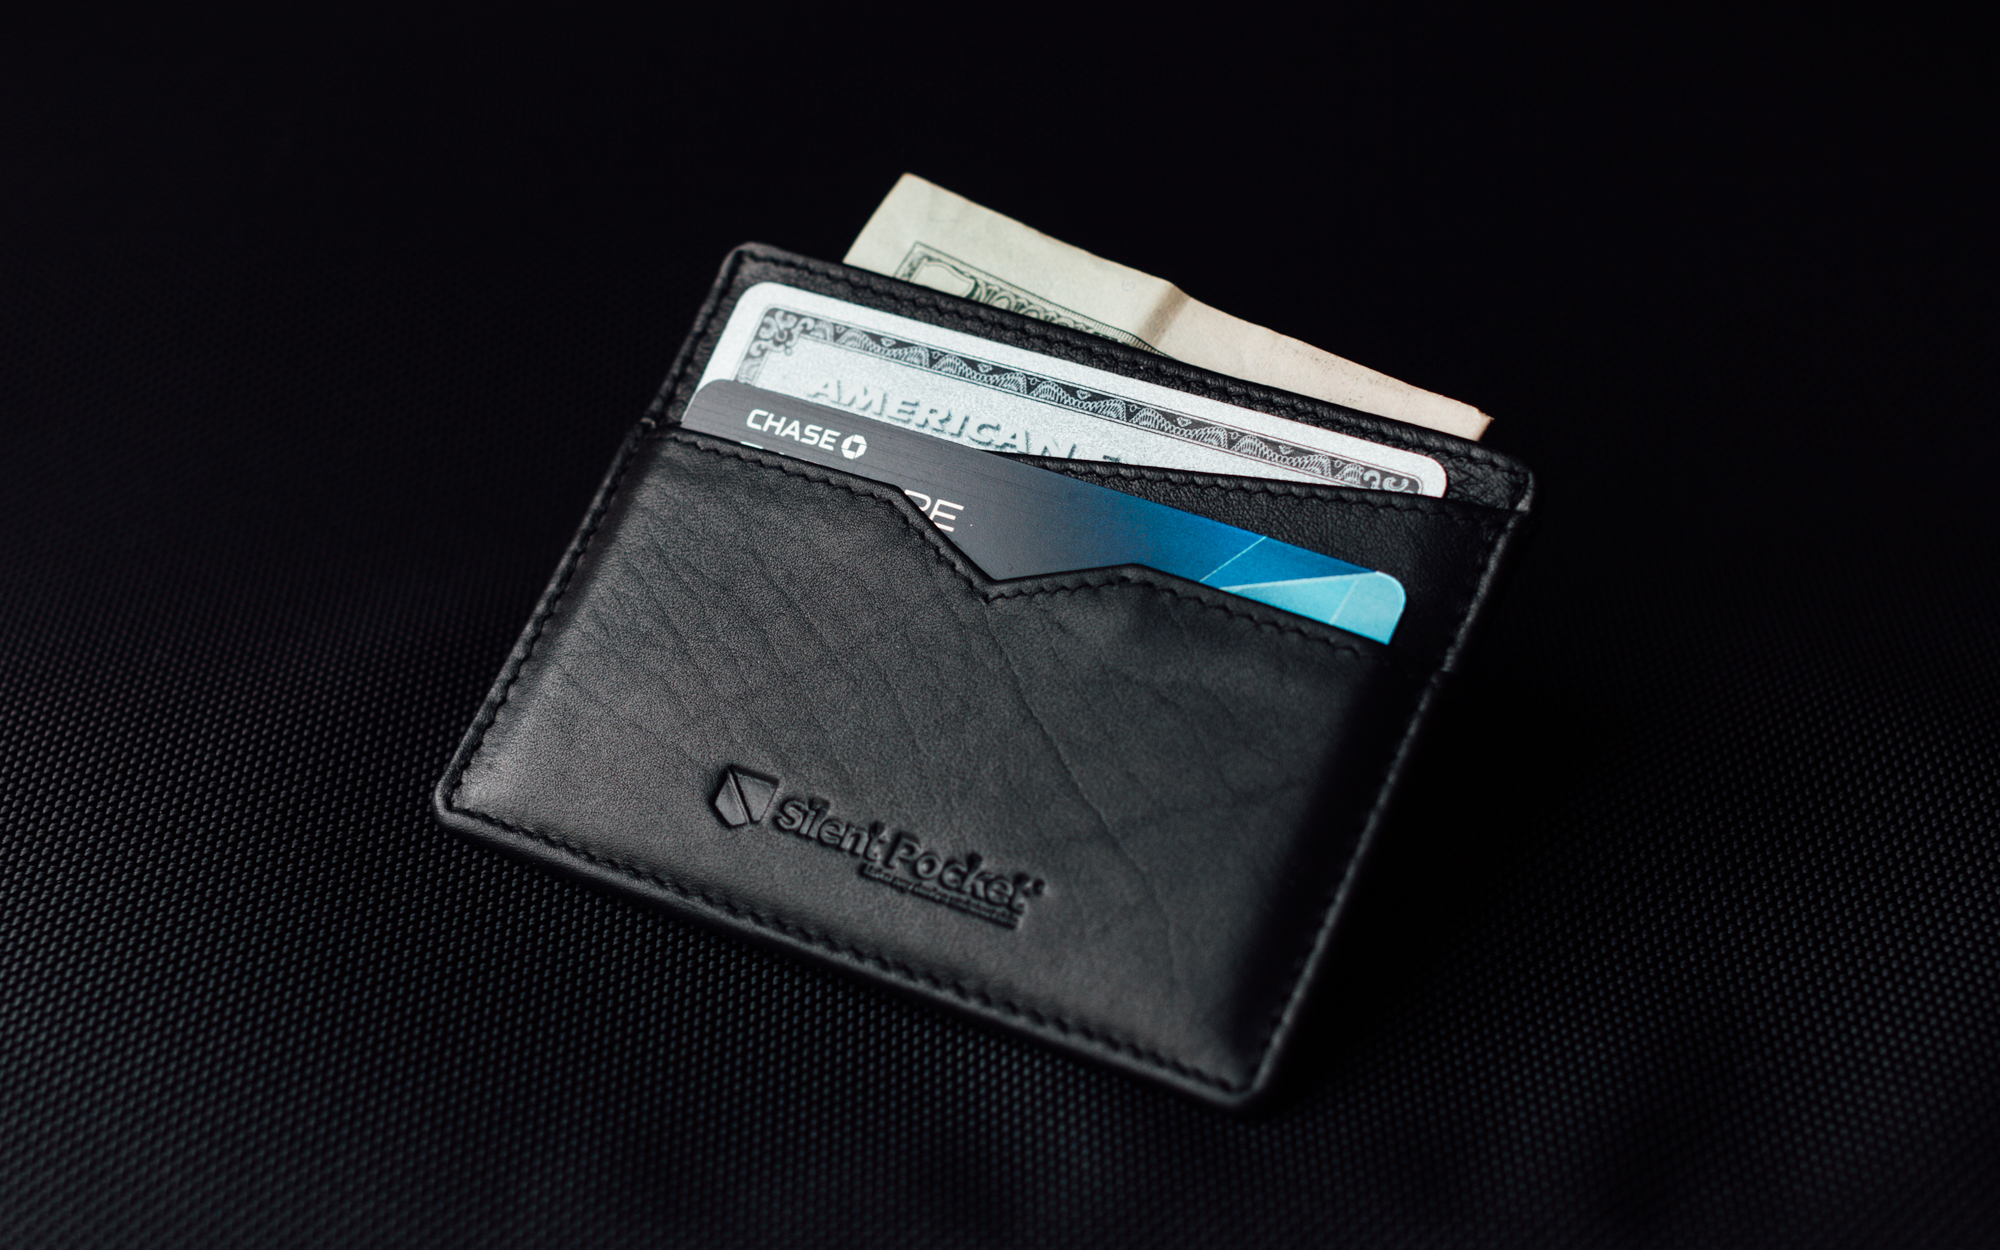 Silent Pocket Secure Simple Wallet